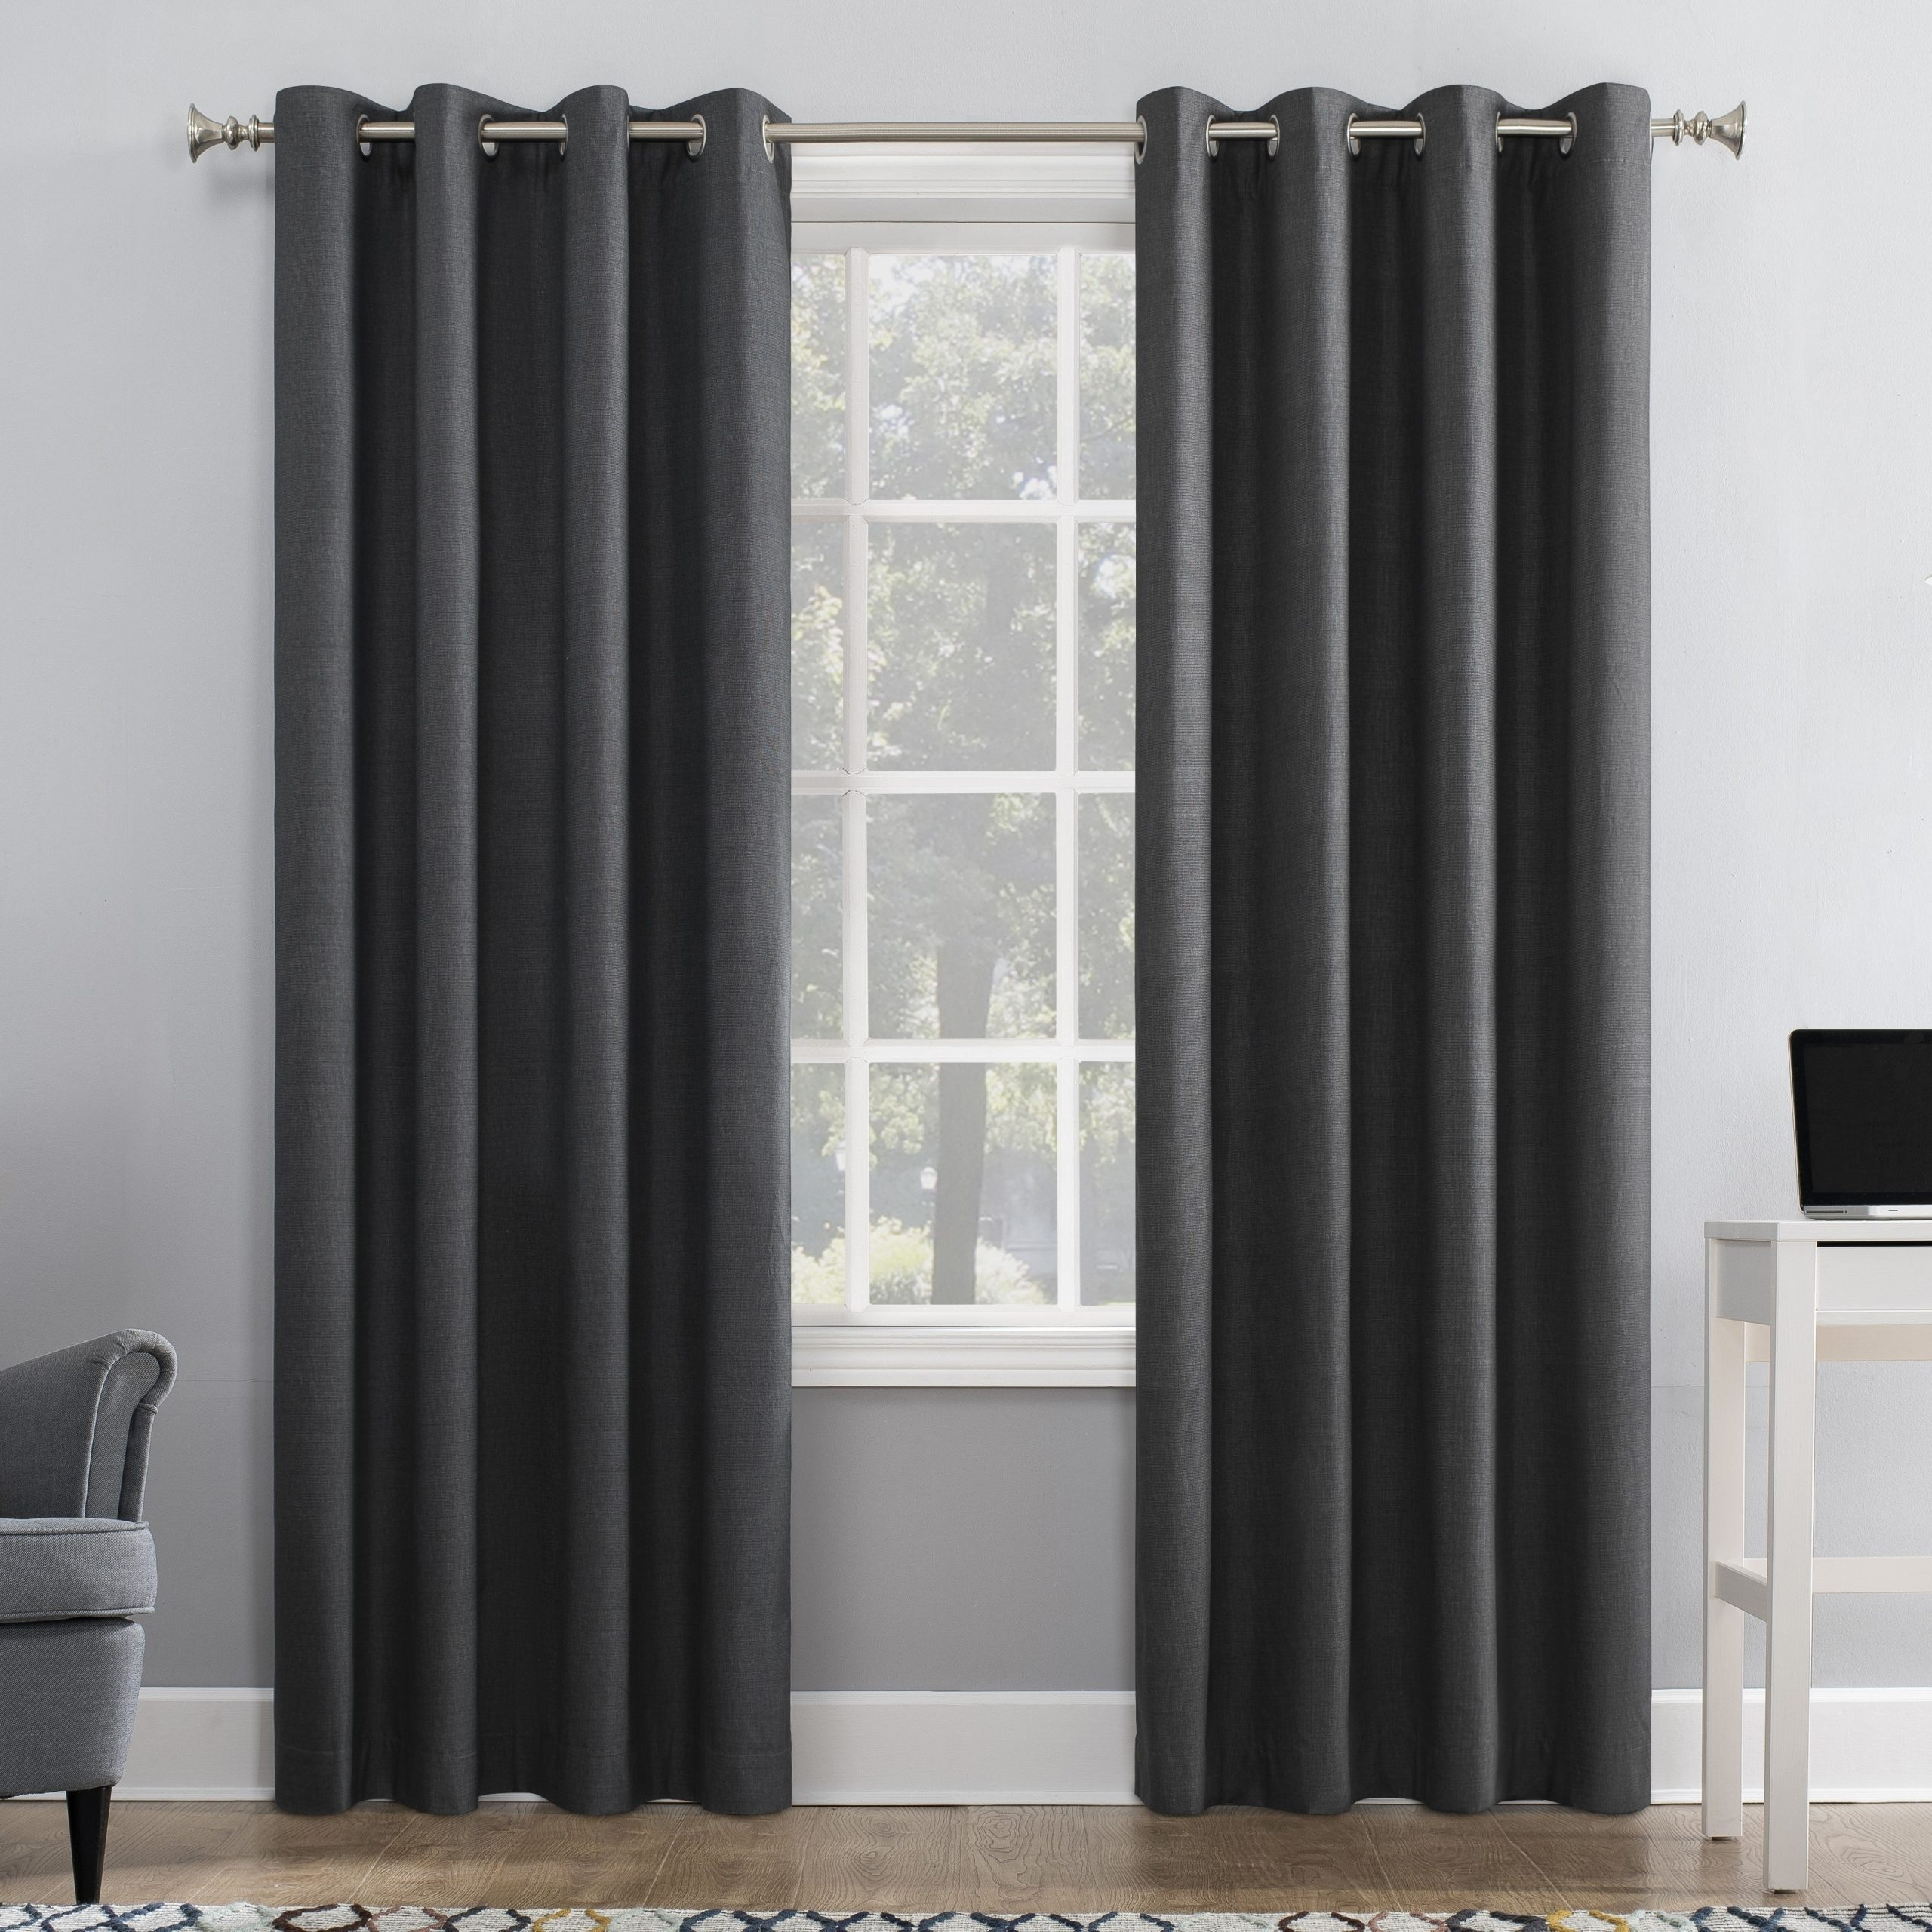 [%Sun Zero Duran Thermal Insulated 100% Blackout Grommet Curtain Panel In Most Up To Date Blackout Grommet Curtain Panels|Blackout Grommet Curtain Panels With Regard To Well Known Sun Zero Duran Thermal Insulated 100% Blackout Grommet Curtain Panel|Latest Blackout Grommet Curtain Panels Throughout Sun Zero Duran Thermal Insulated 100% Blackout Grommet Curtain Panel|Most Recently Released Sun Zero Duran Thermal Insulated 100% Blackout Grommet Curtain Panel Pertaining To Blackout Grommet Curtain Panels%] (View 1 of 20)